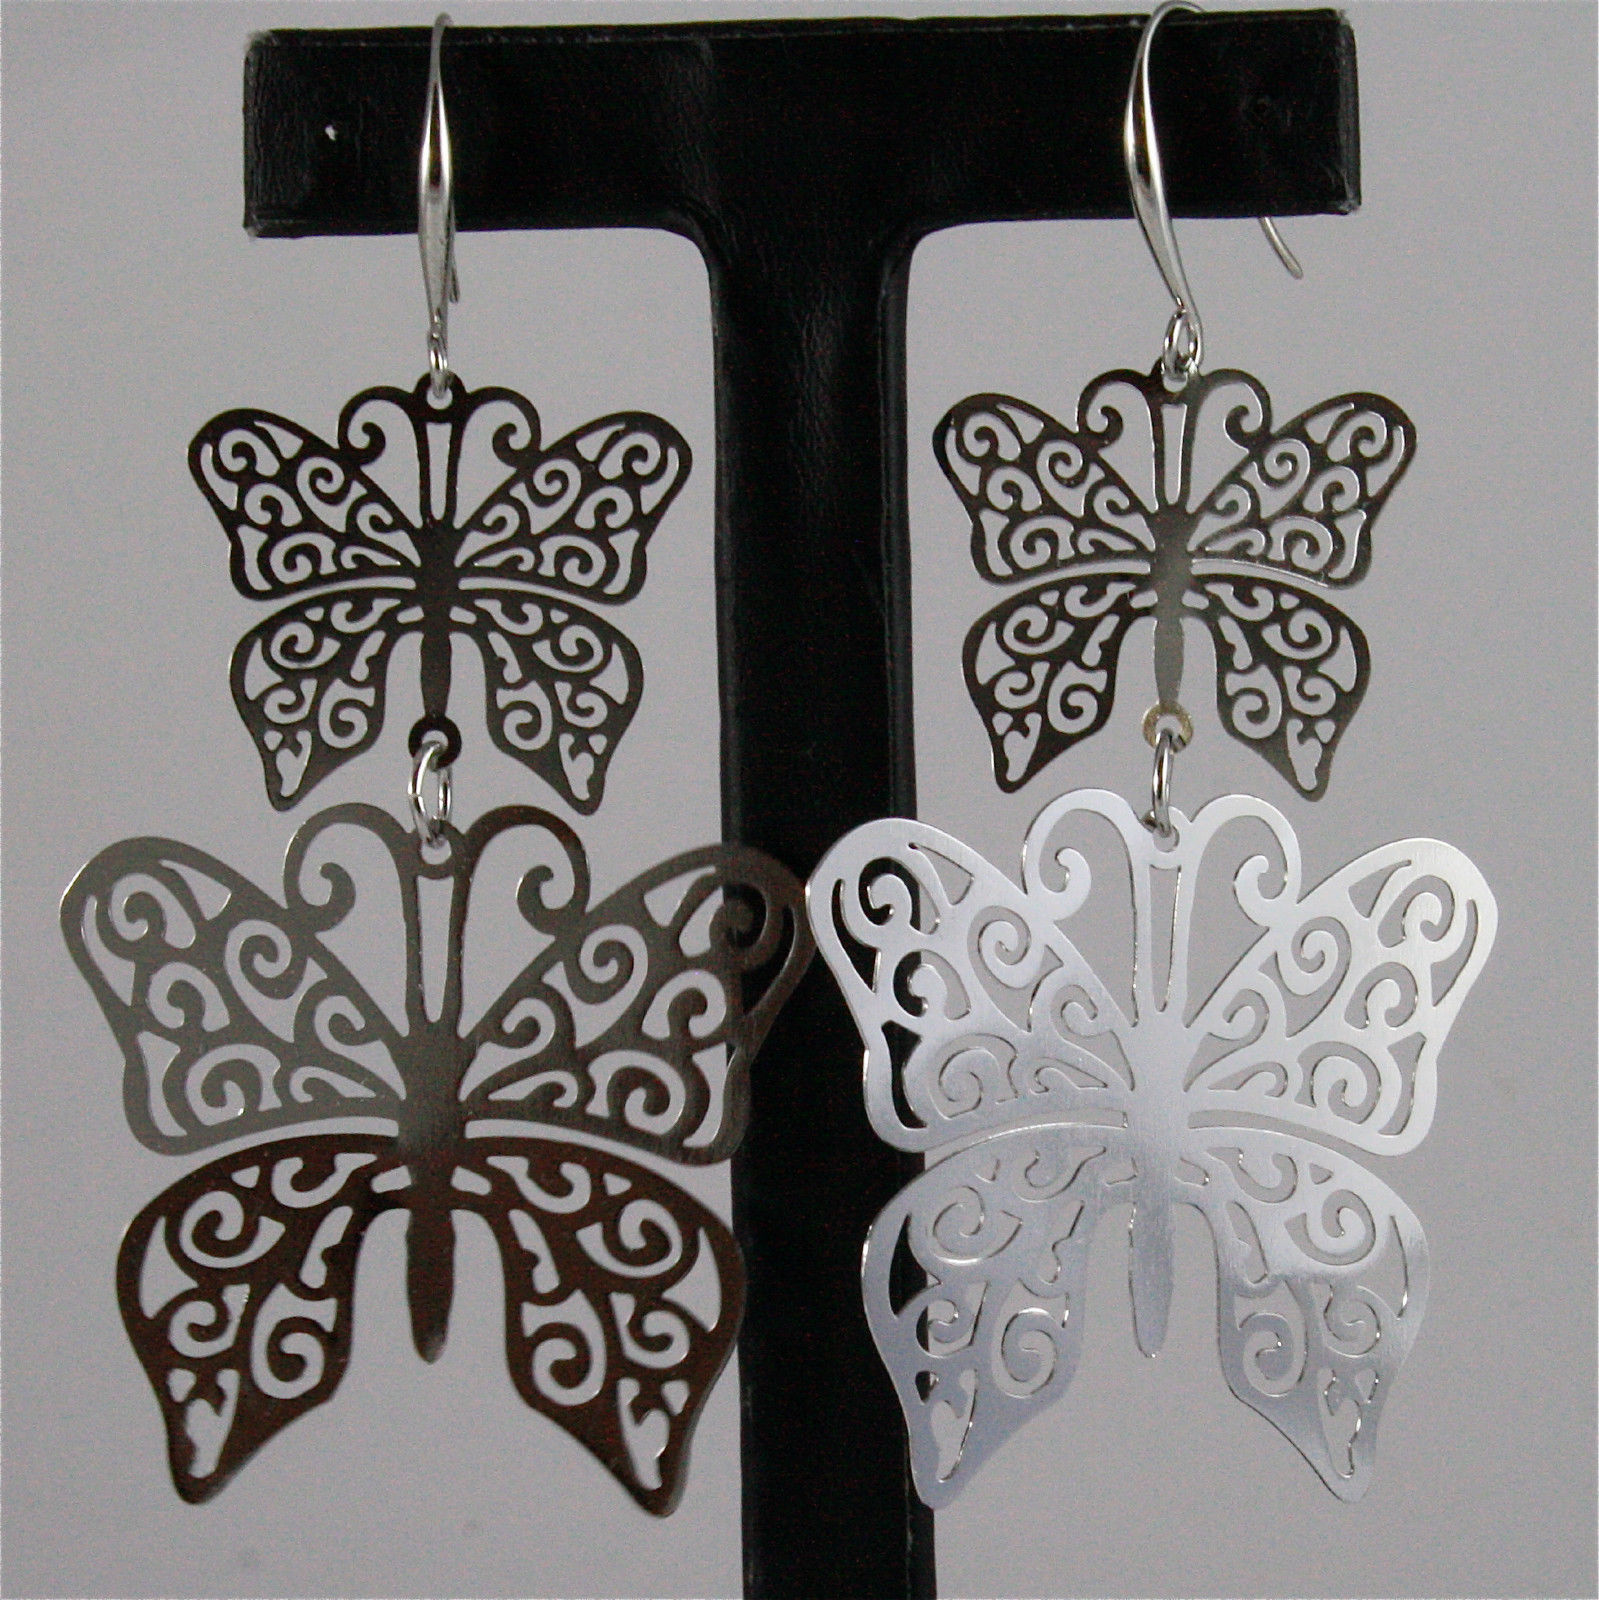 SOLID ANALLERGIC METAL EARRINGS, DOUBLE BUTTERFLIES, LIGHT AND BRIGHT.